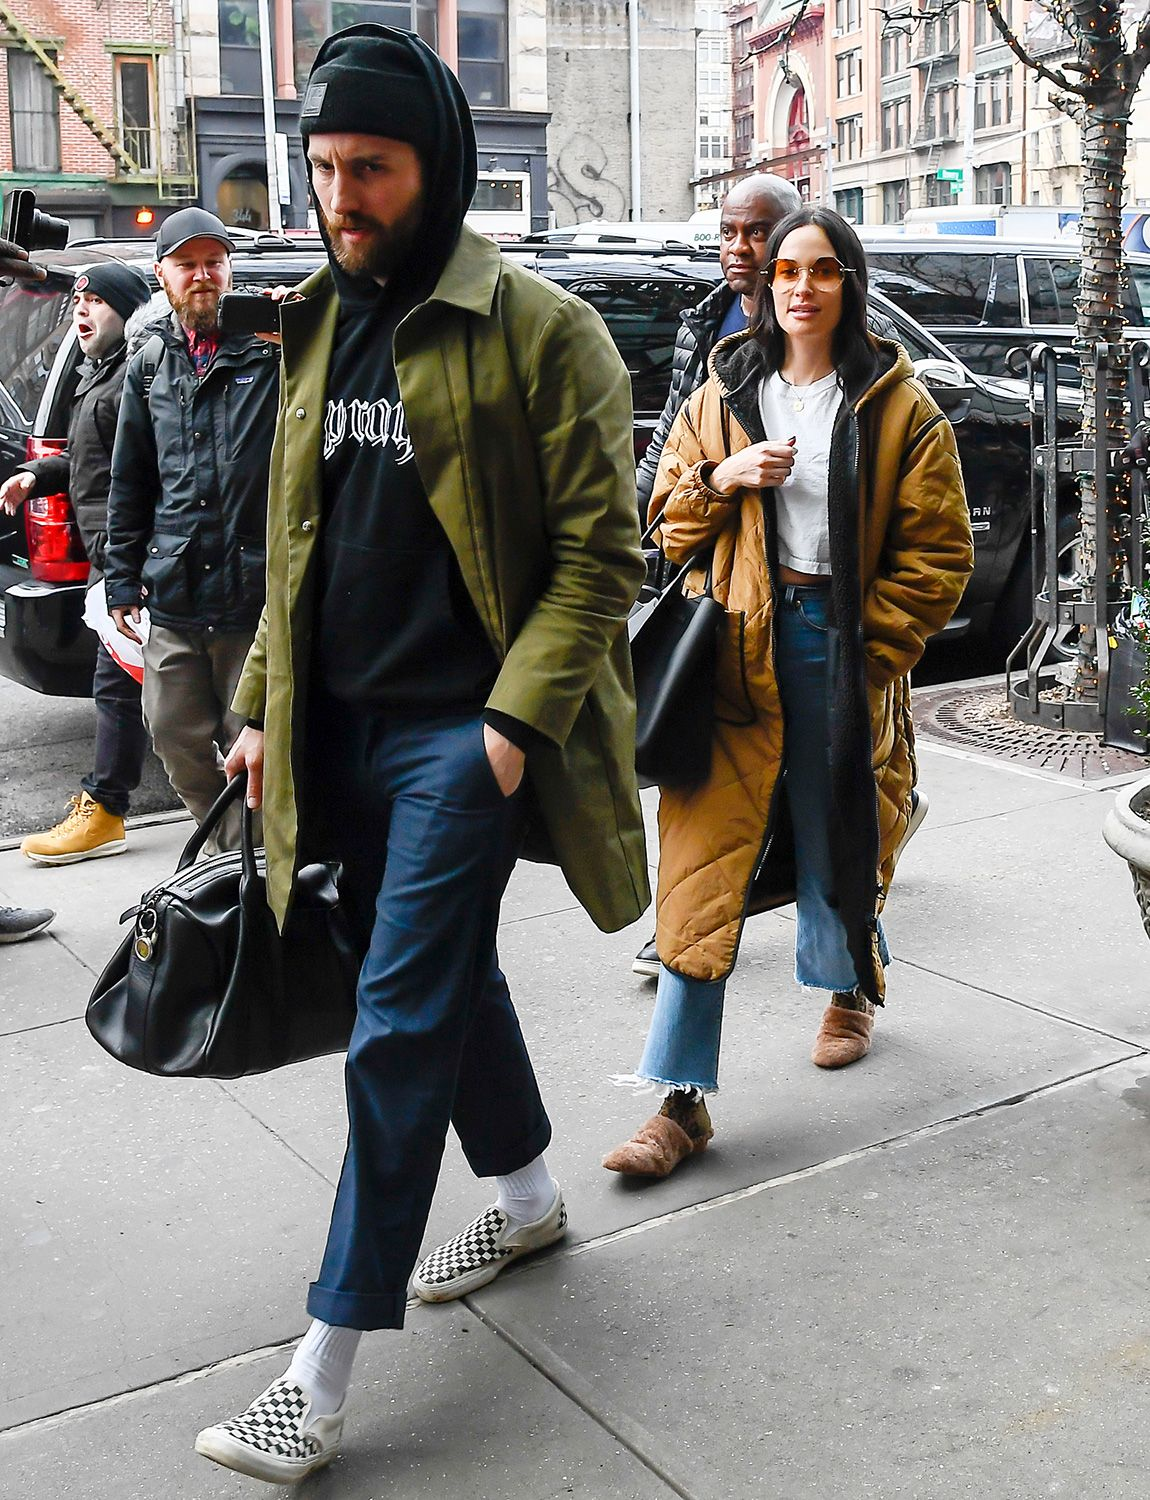 Kacey Musgraves And Husband Ruston Kelly Make Rare Public Appearance Together During Nyfw In 2020 Ruston Kelly Kacey Musgraves Ruston